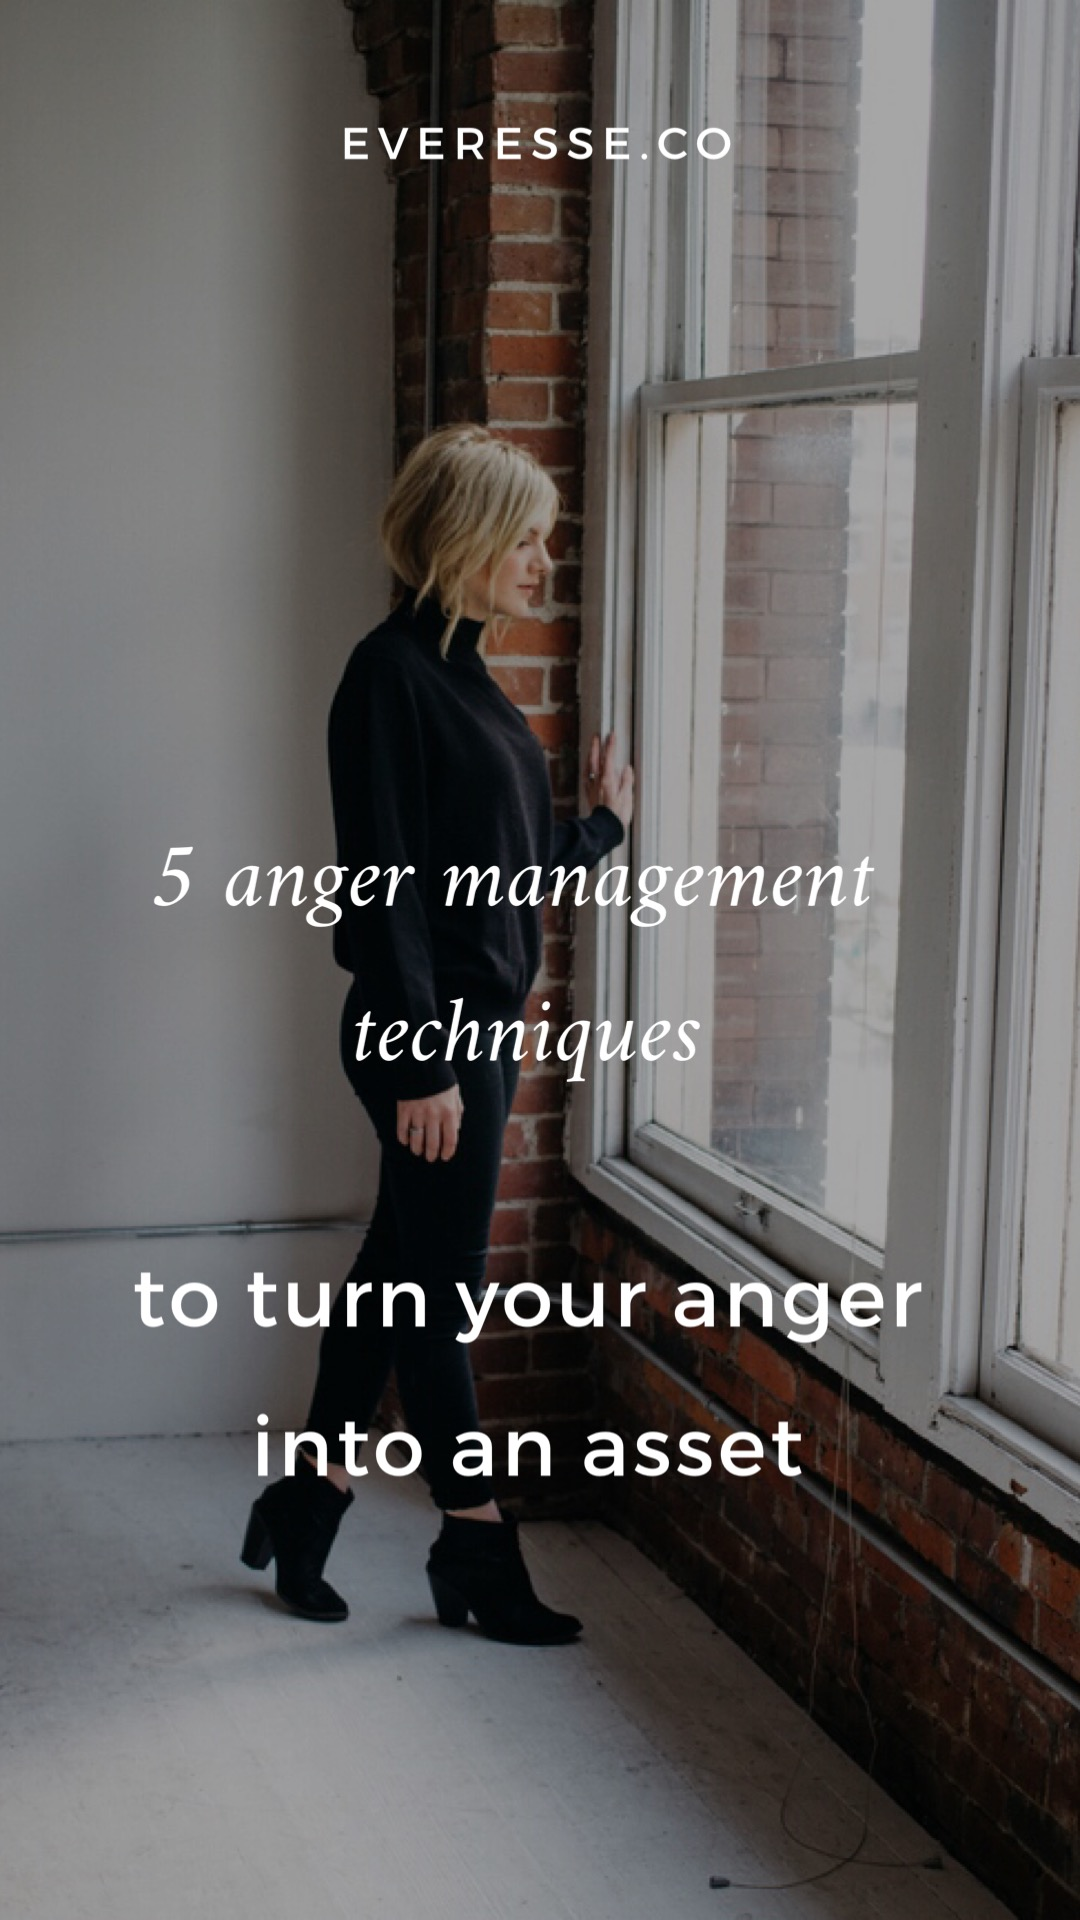 5 anger management techniques